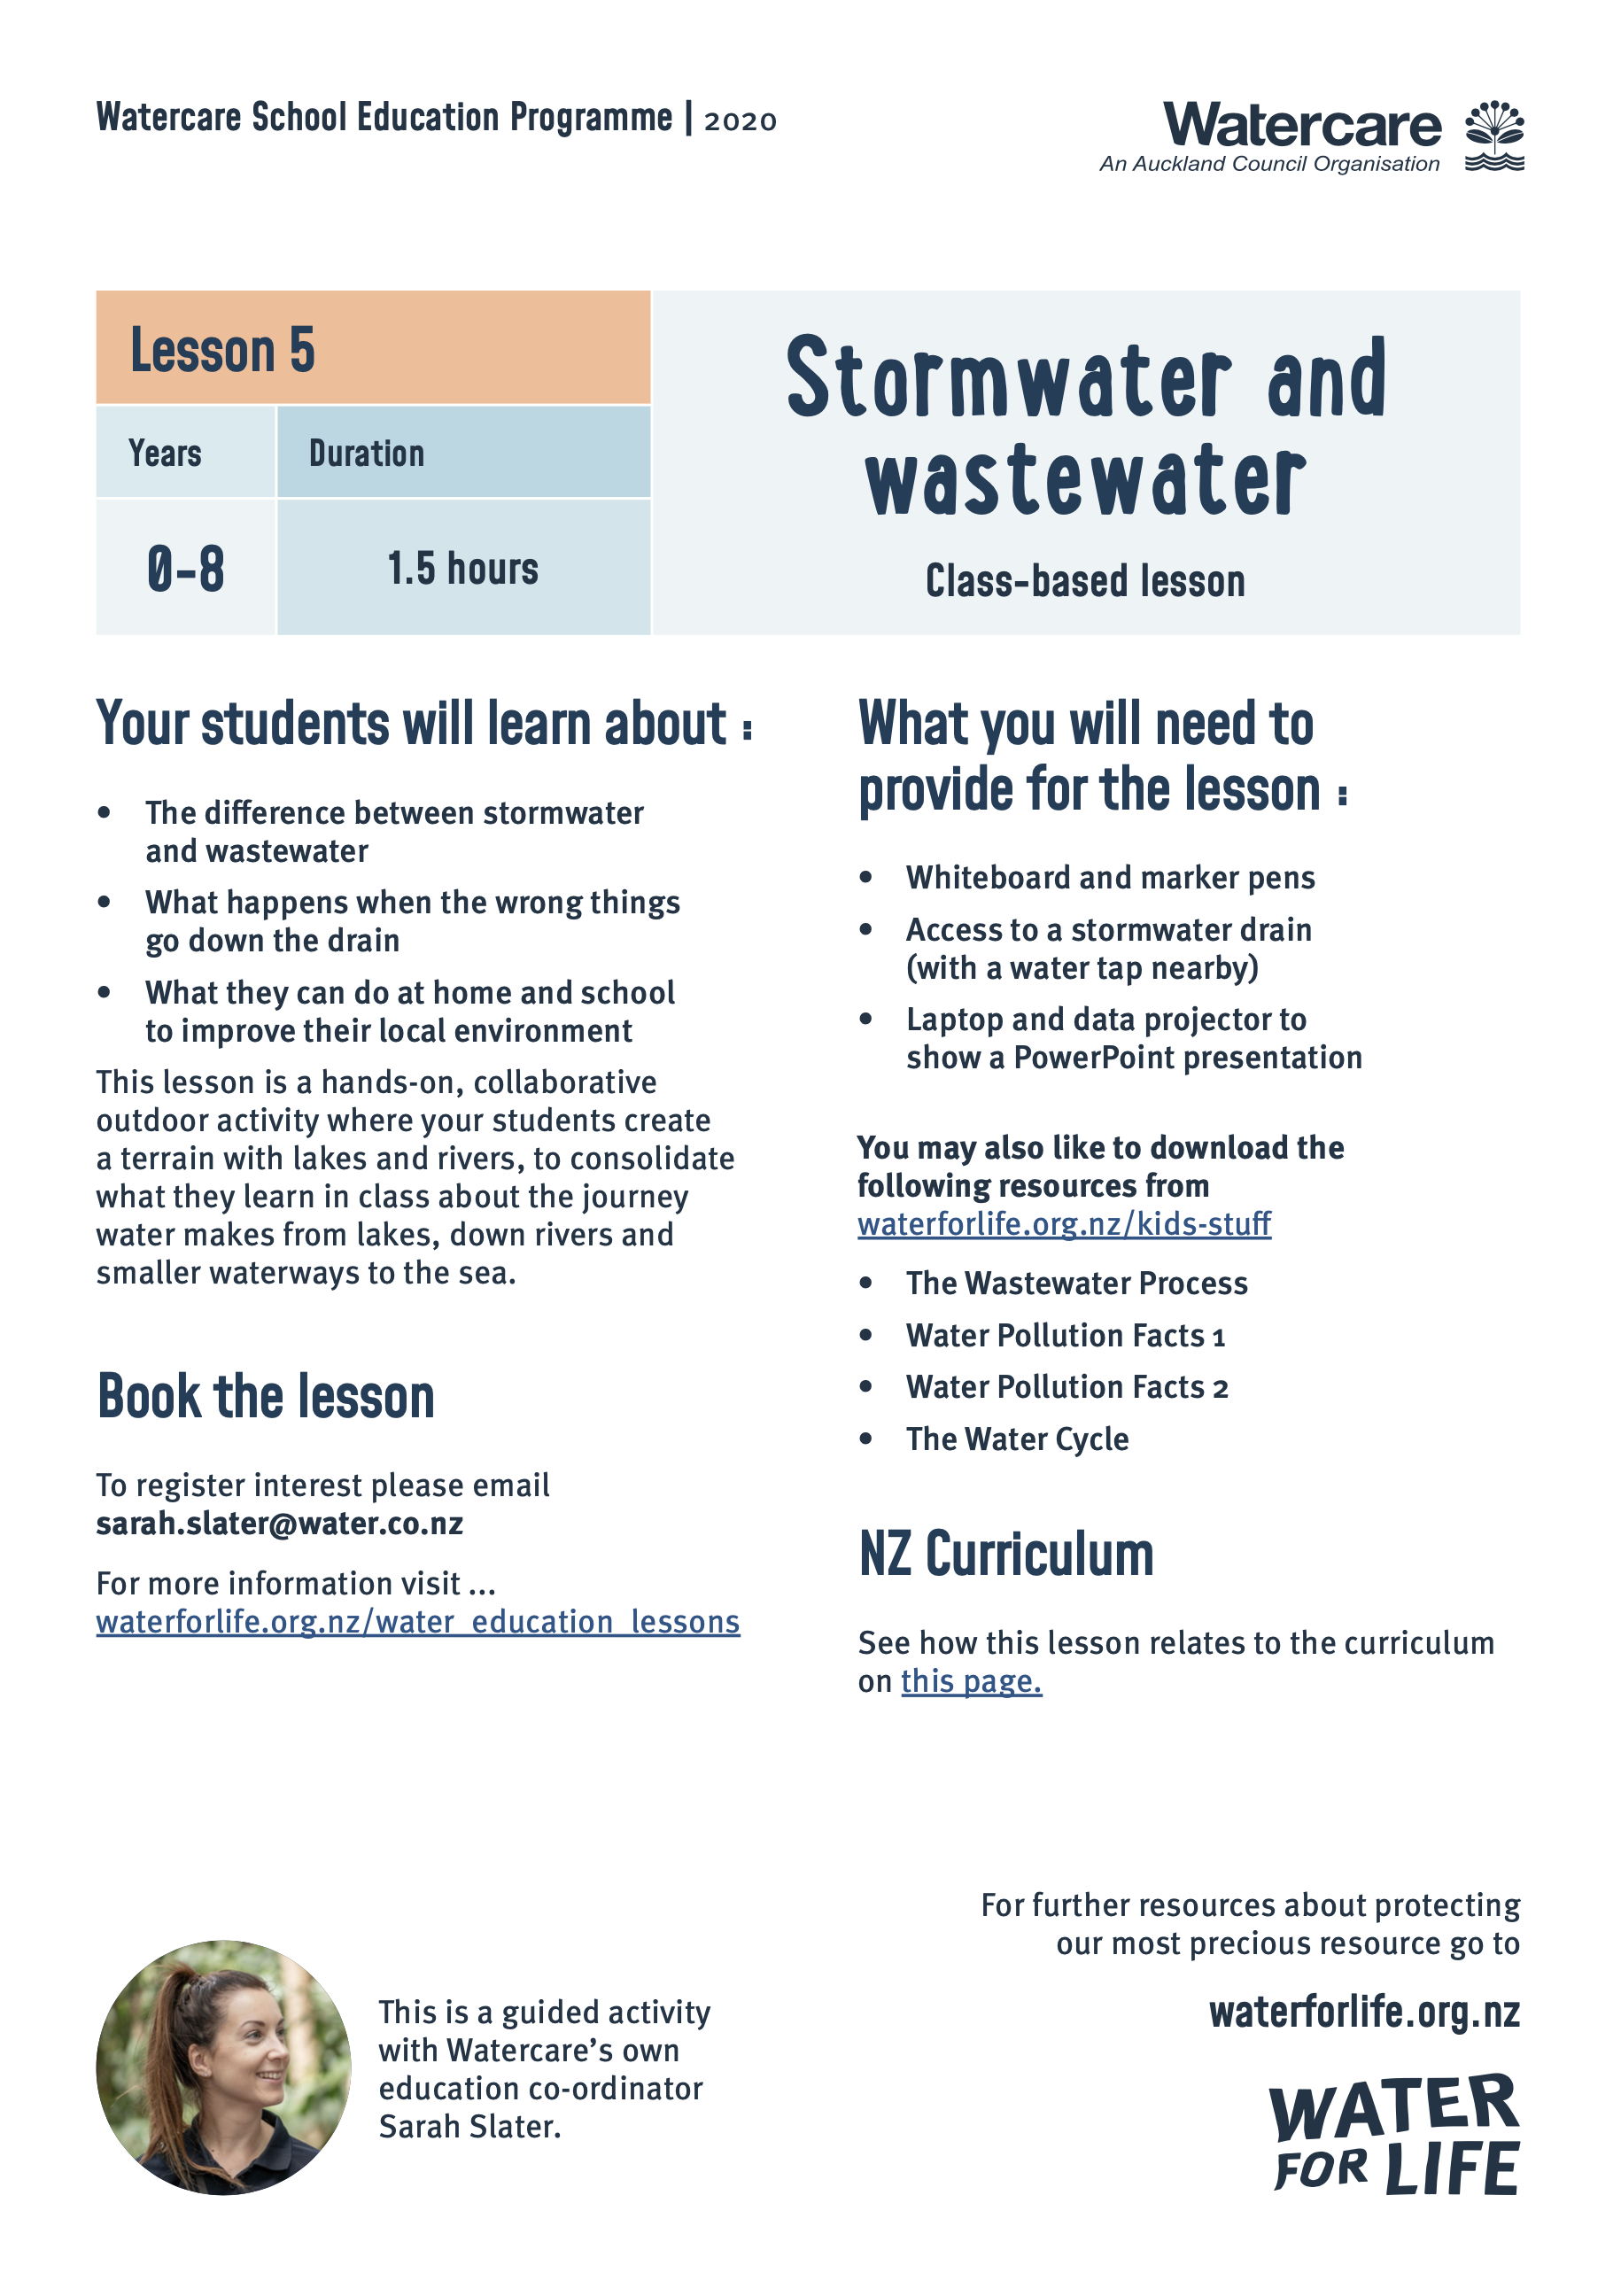 WFL_edu_Lesson5_Stormwater.pdf